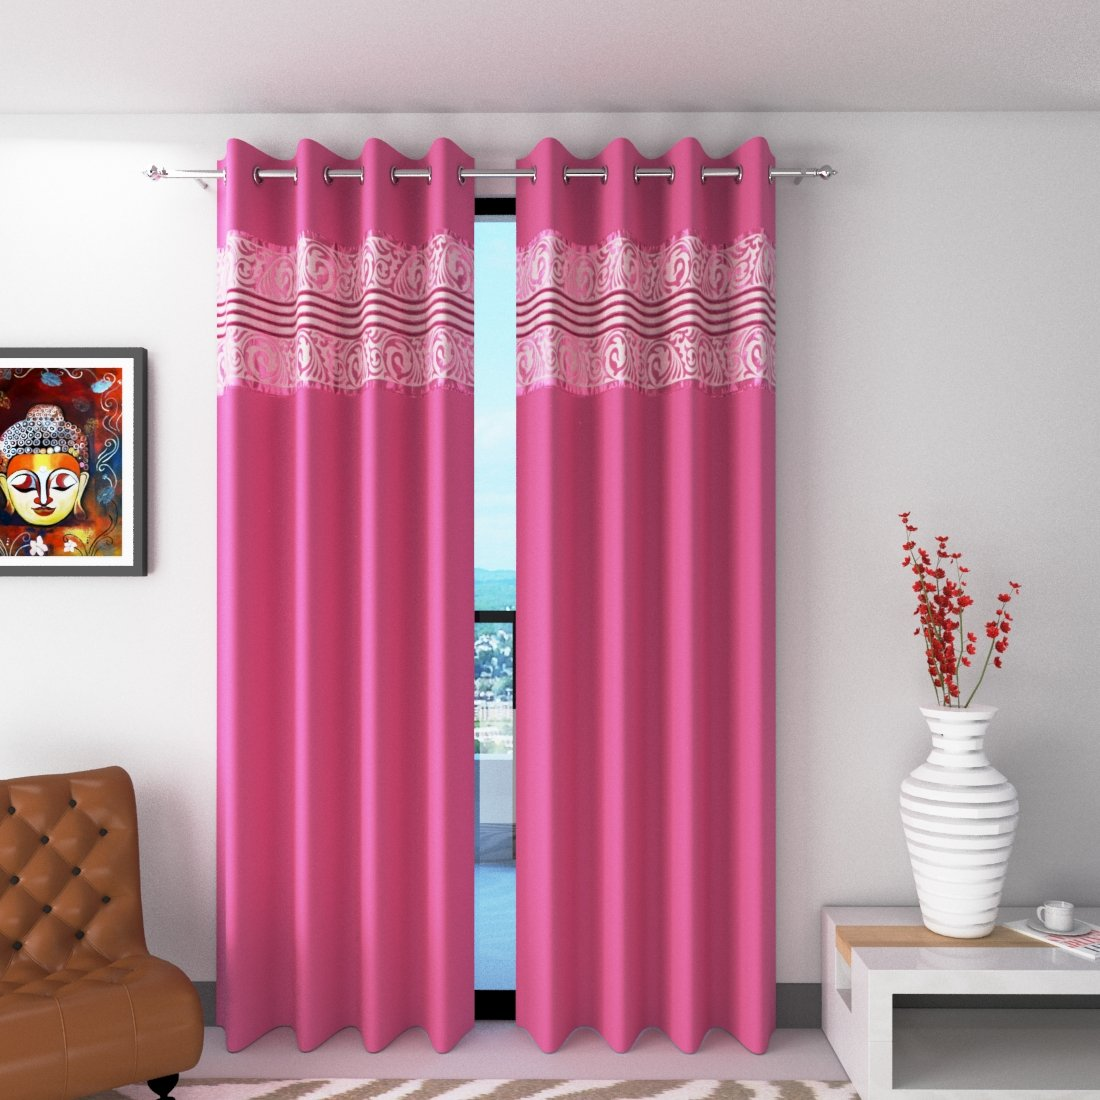 curtains for window 5 feet by La elite |curtains 5 feet set of 2 |window  curtains cotton ployester blend |curtains for bedroom window |curtains  living ...